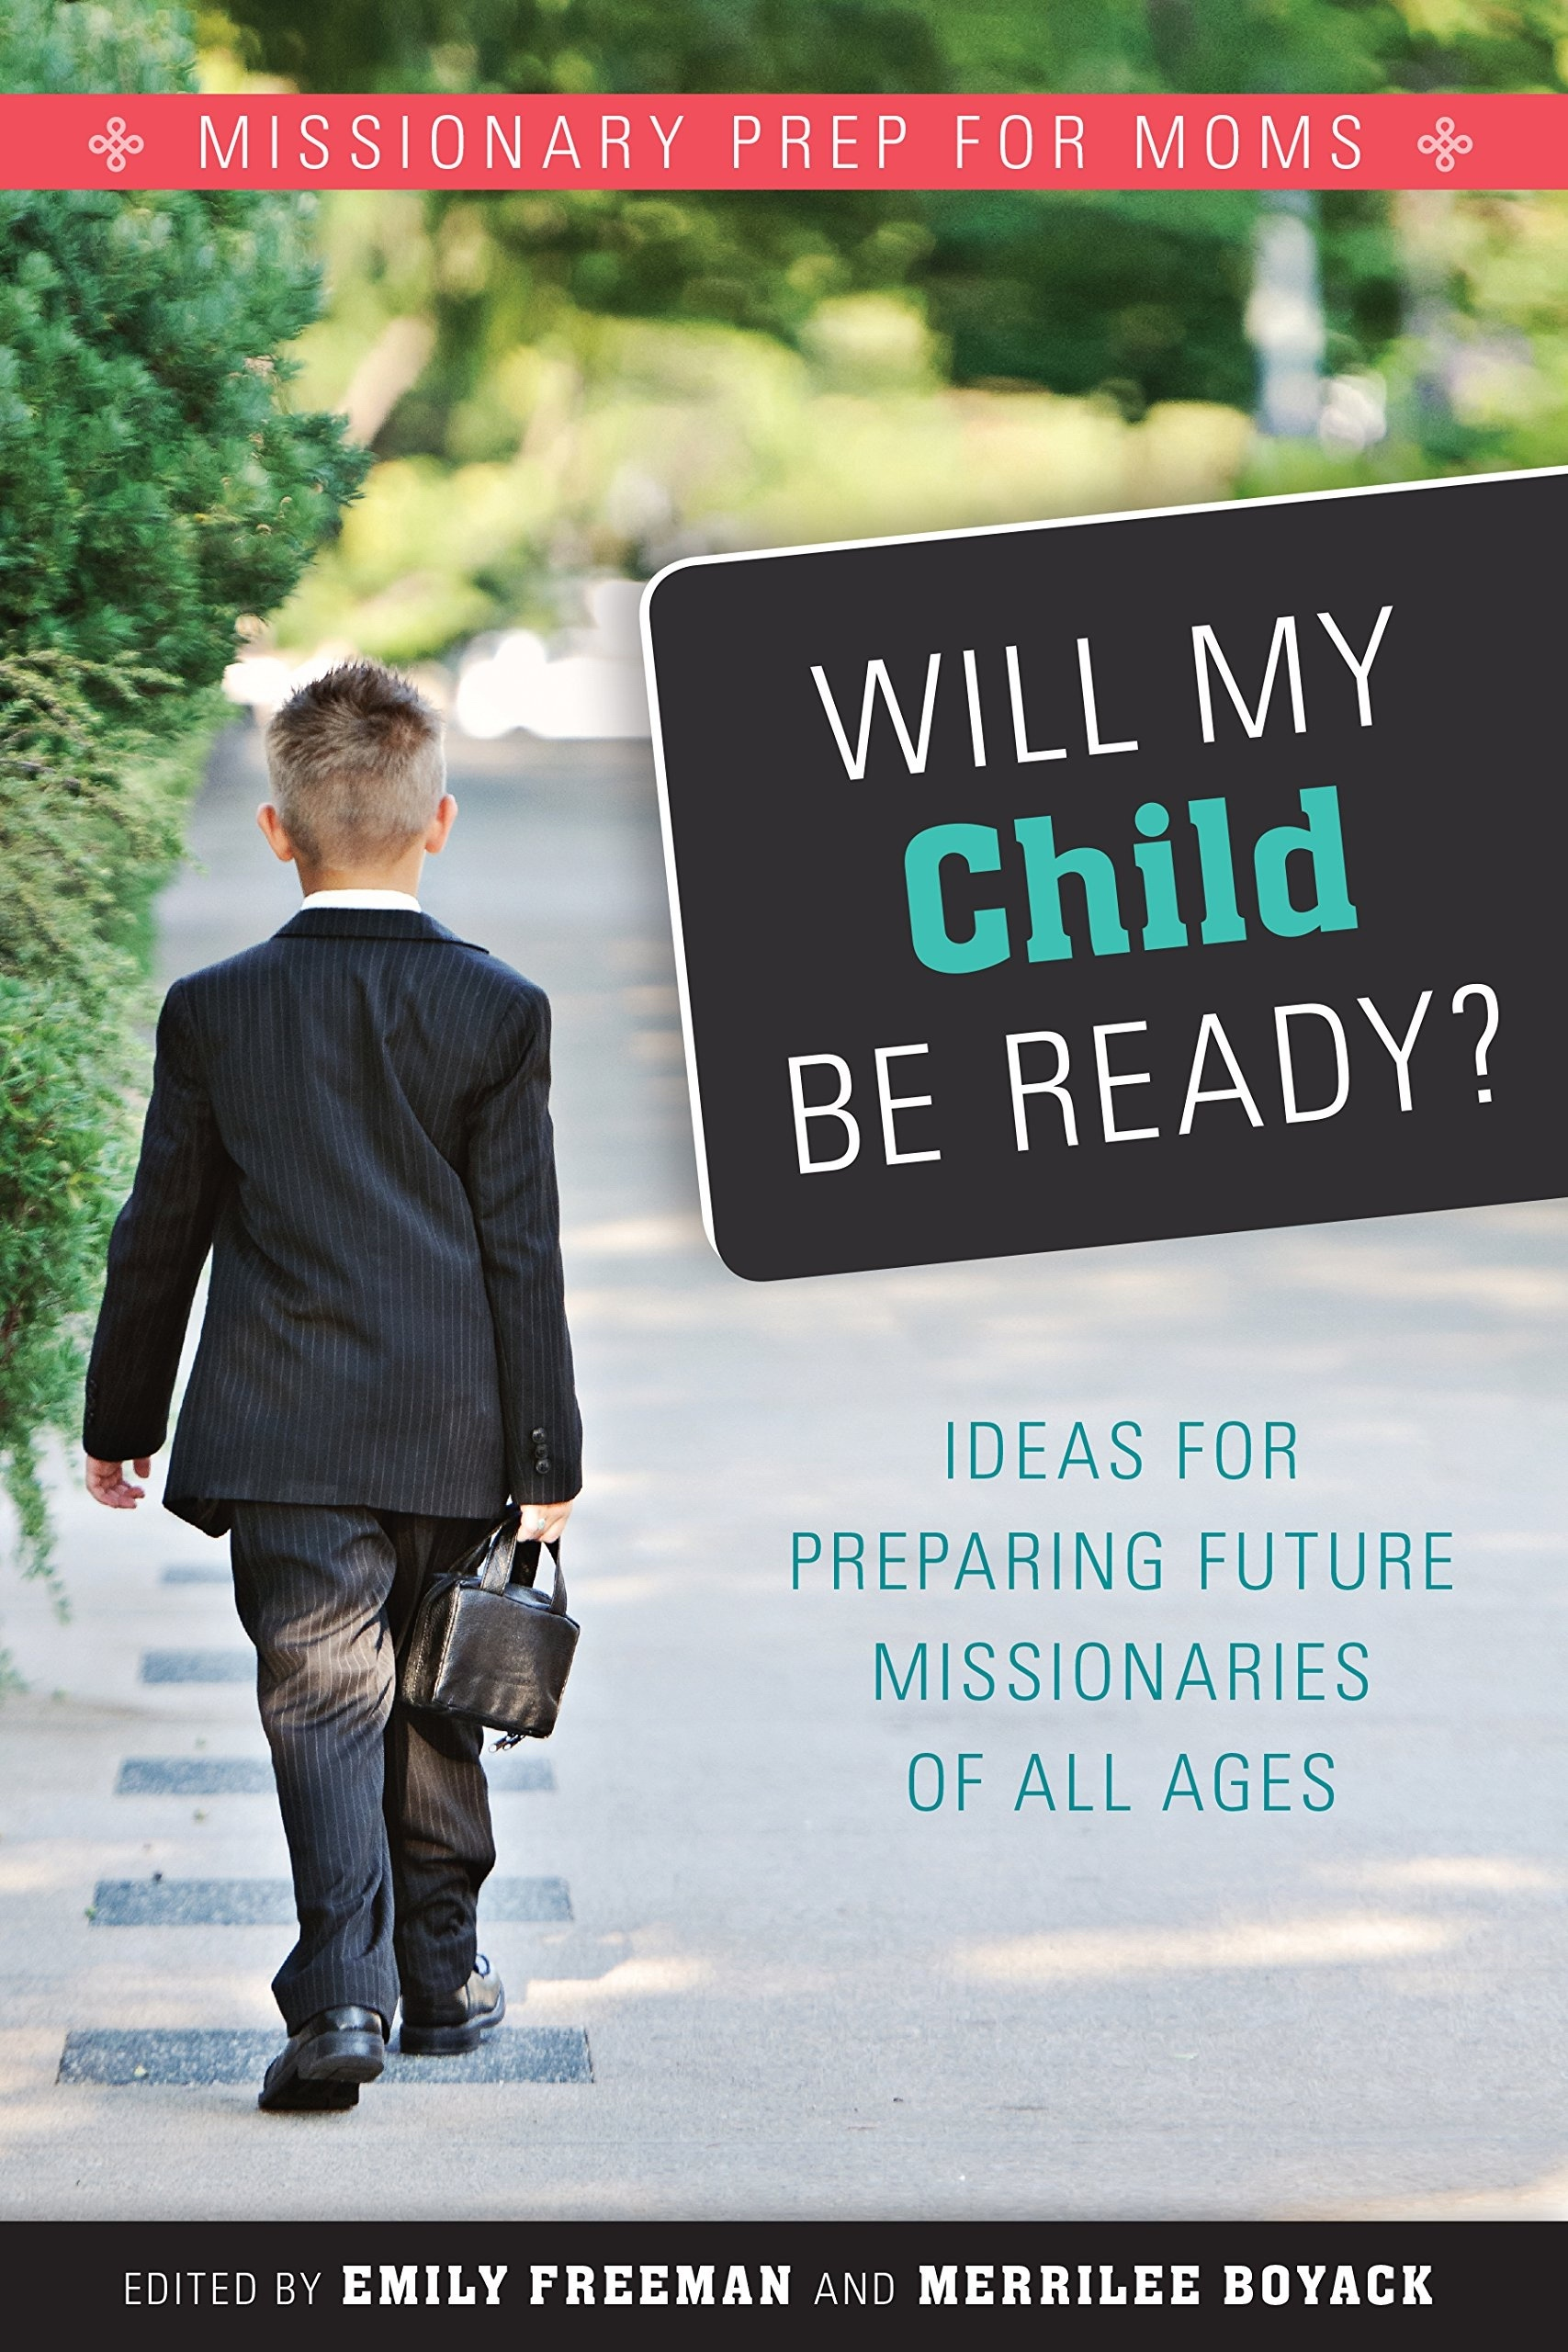 Will My Child Be Ready? Missionary Prep for Moms, Emily Freeman & Merrilee Boyack